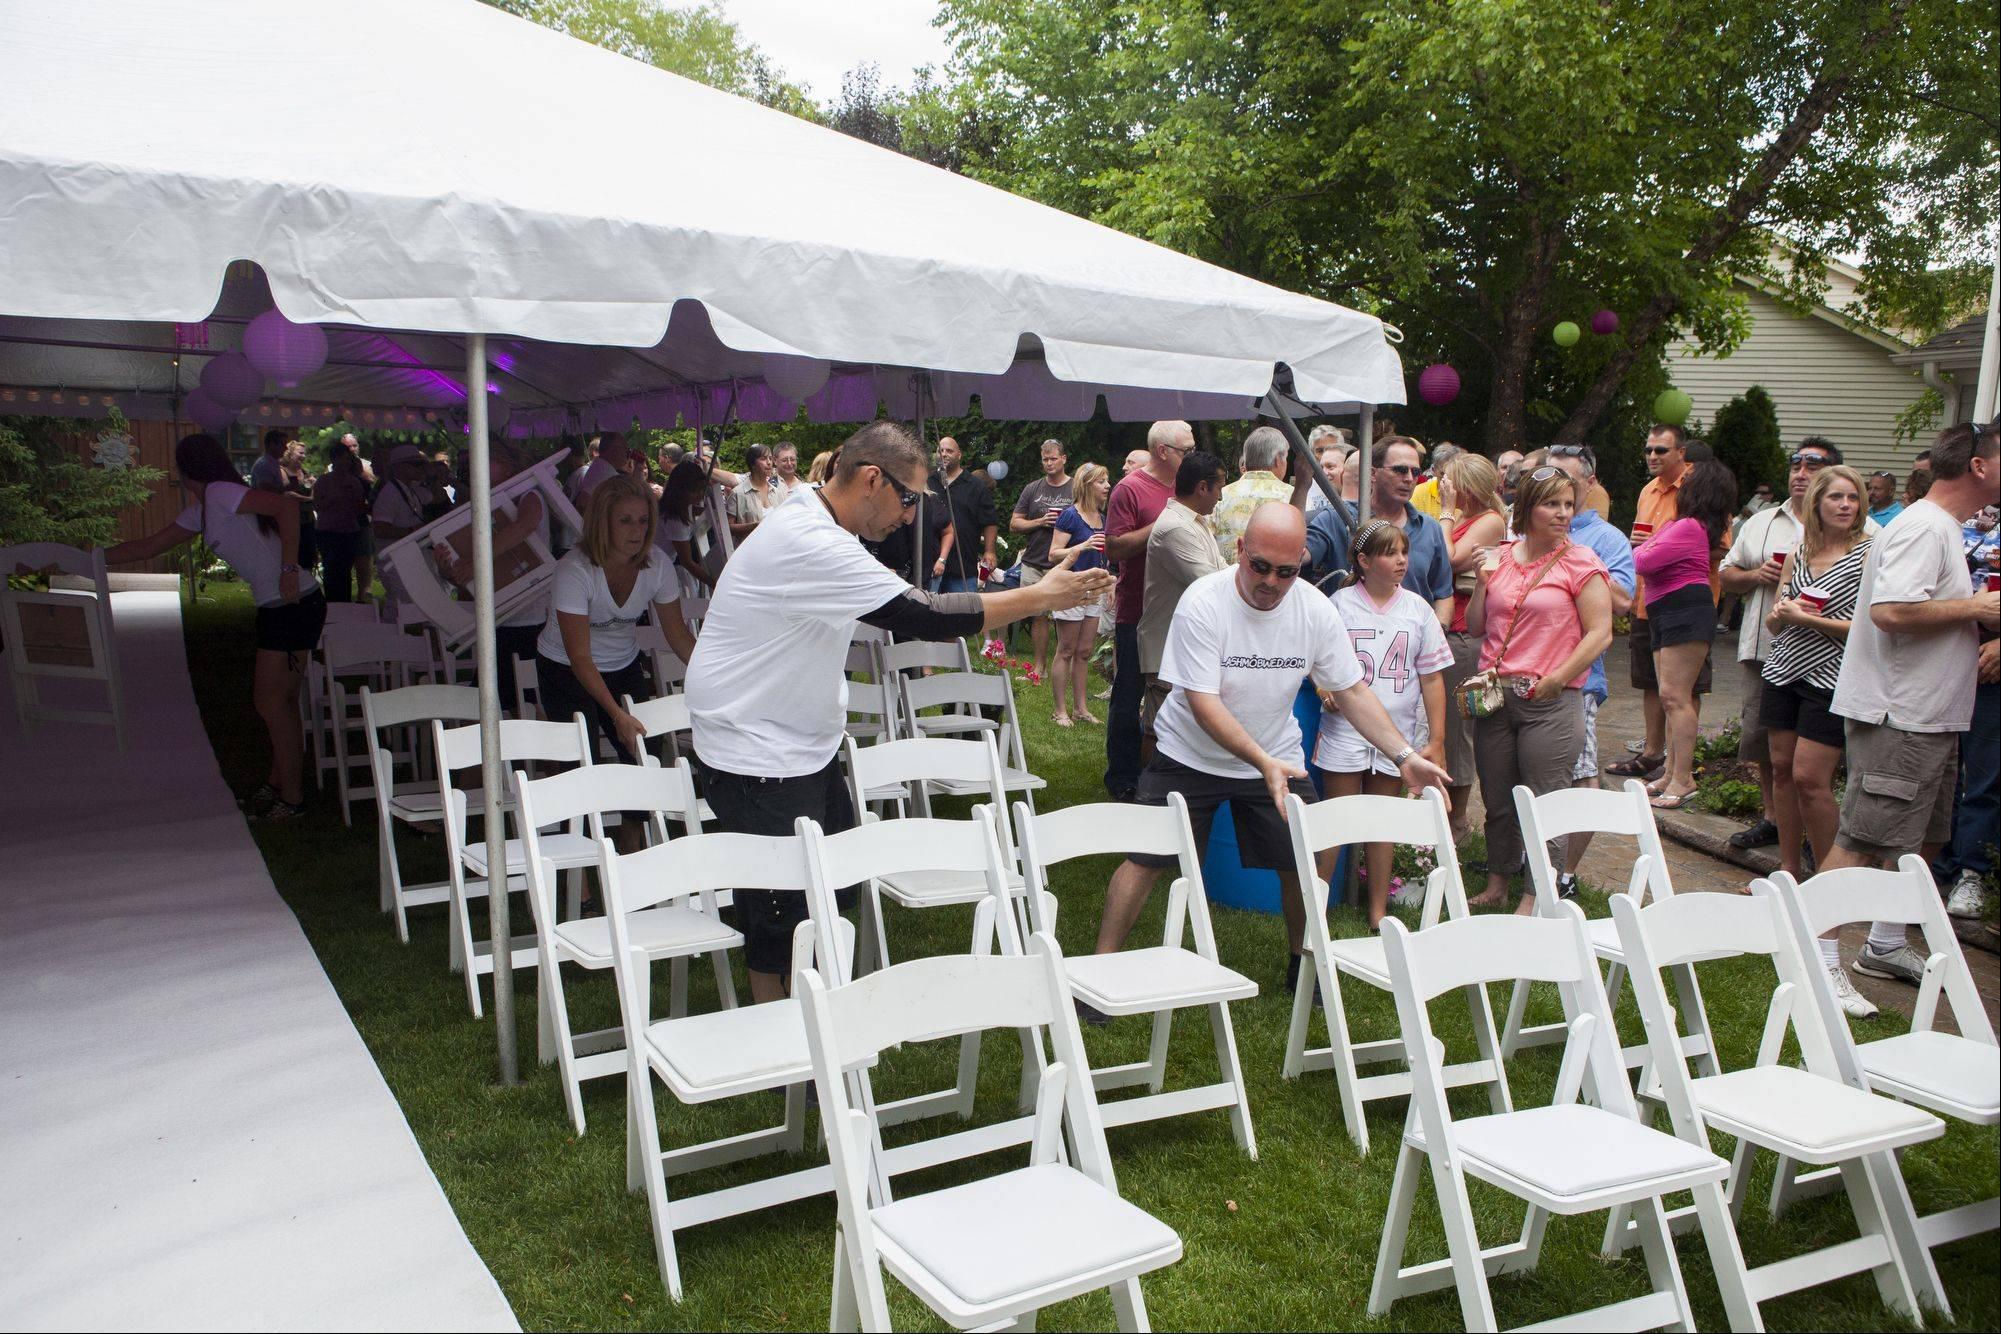 Mario Reyes directs the flash mob wedding team members as they quickly set up chairs for Libby Watkins and Mike Conjura's flash mob wedding.